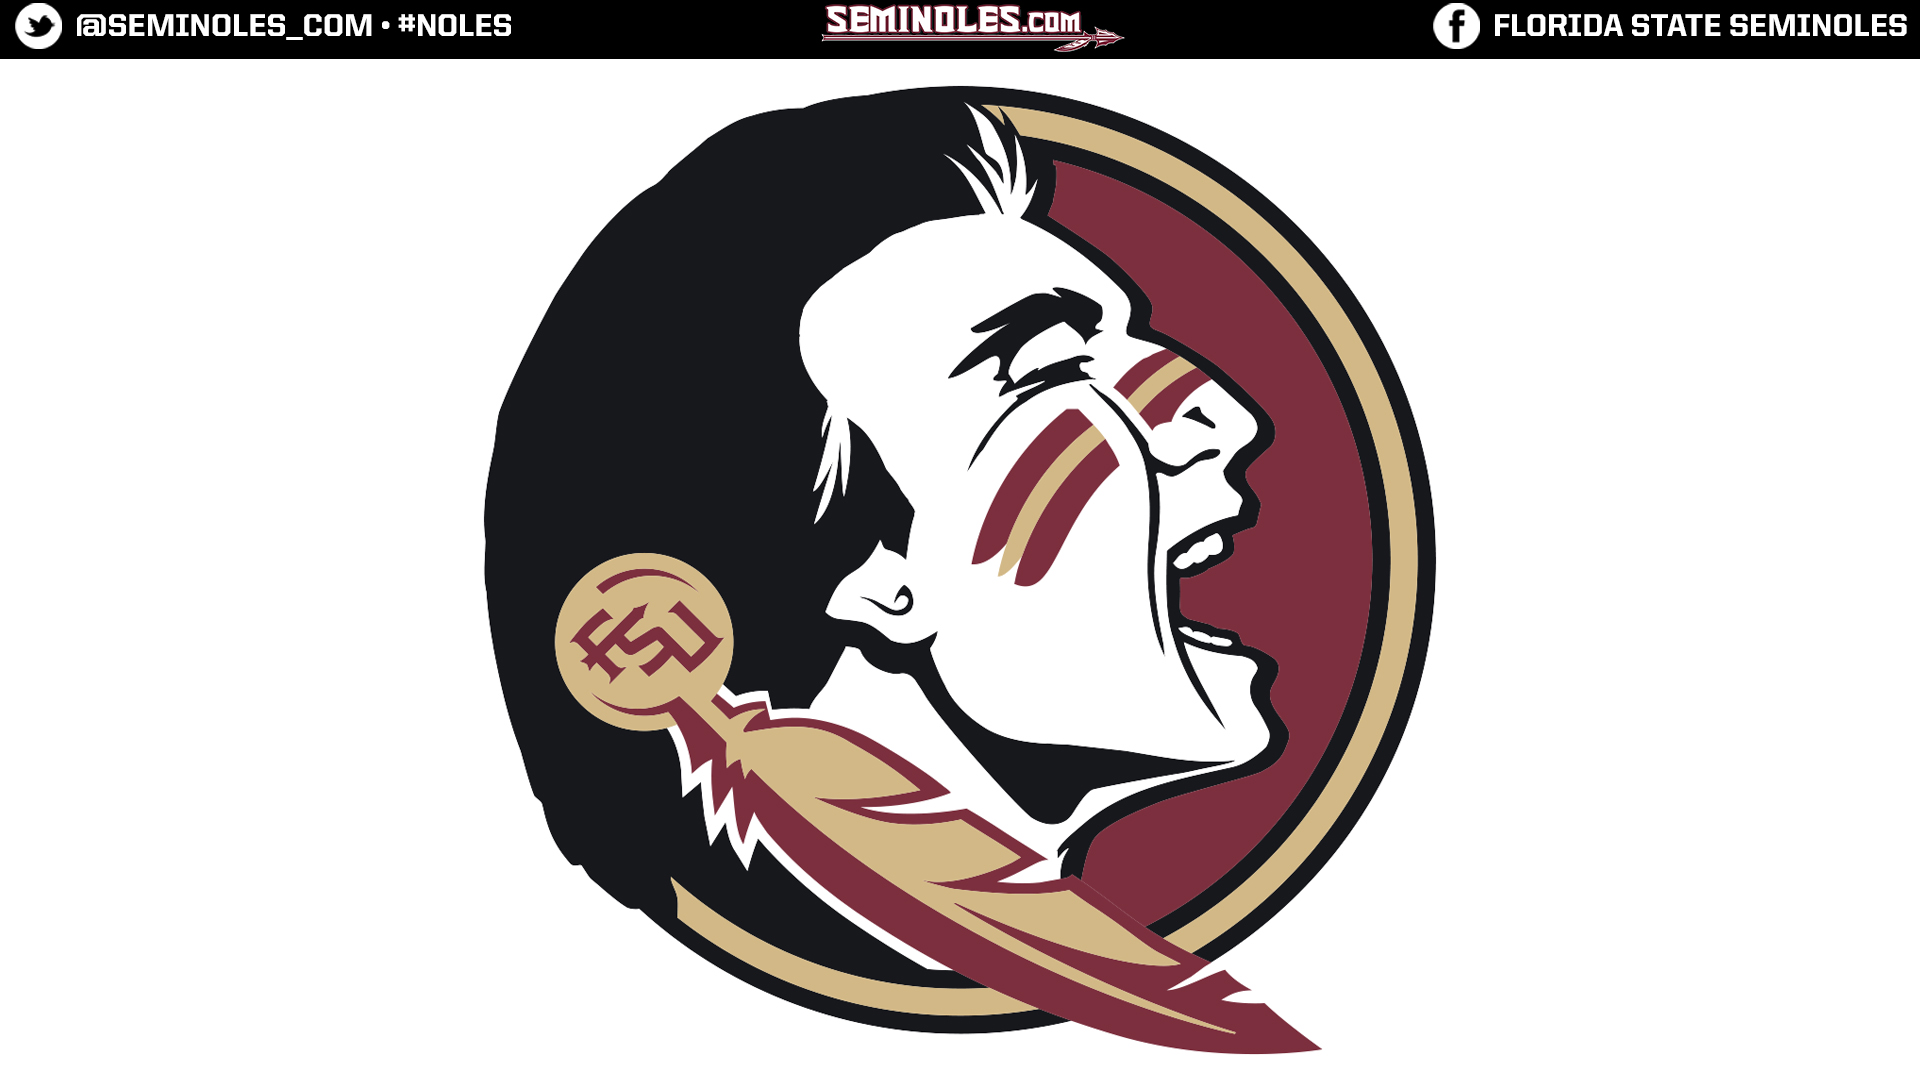 genrel wallpaper   Florida State Seminoles Official Athletic Site 1920x1080